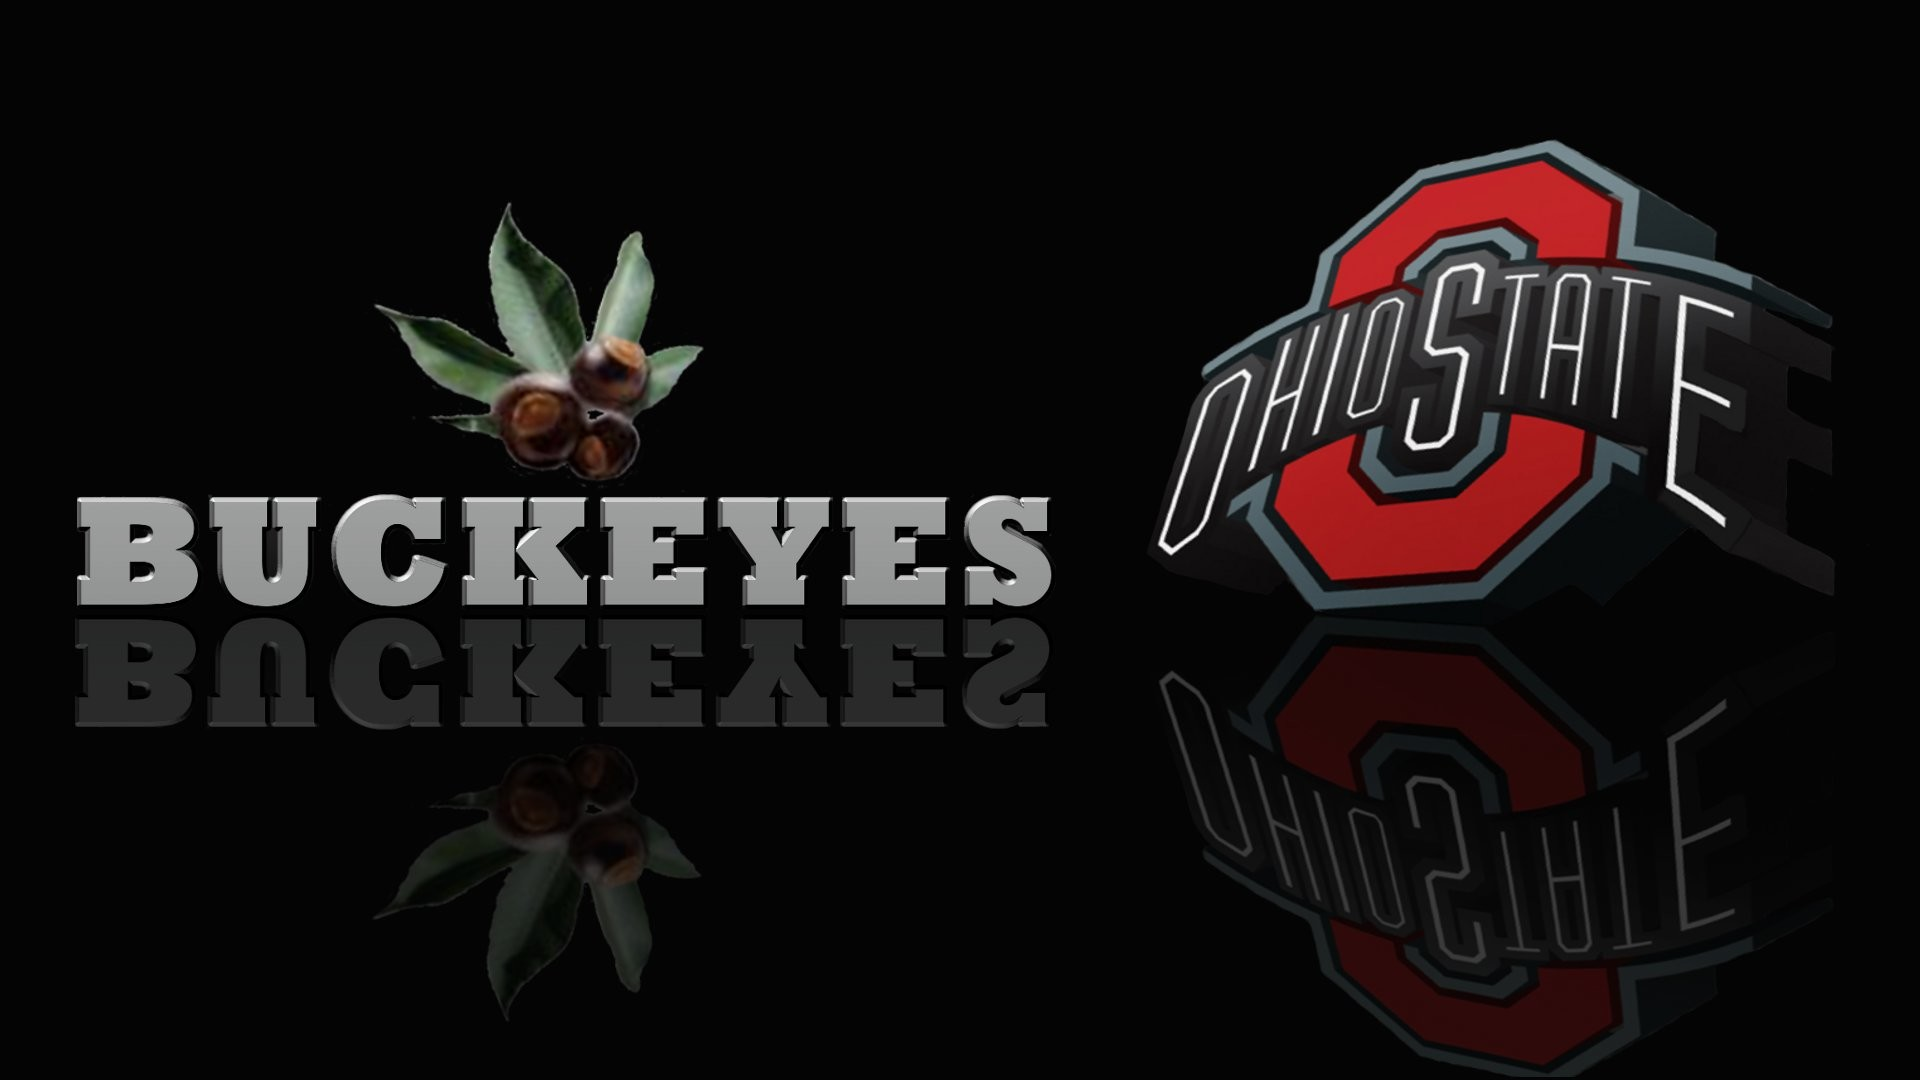 1920x1080 screensavers, buckeyenuts, state, american, football, wallpapers .